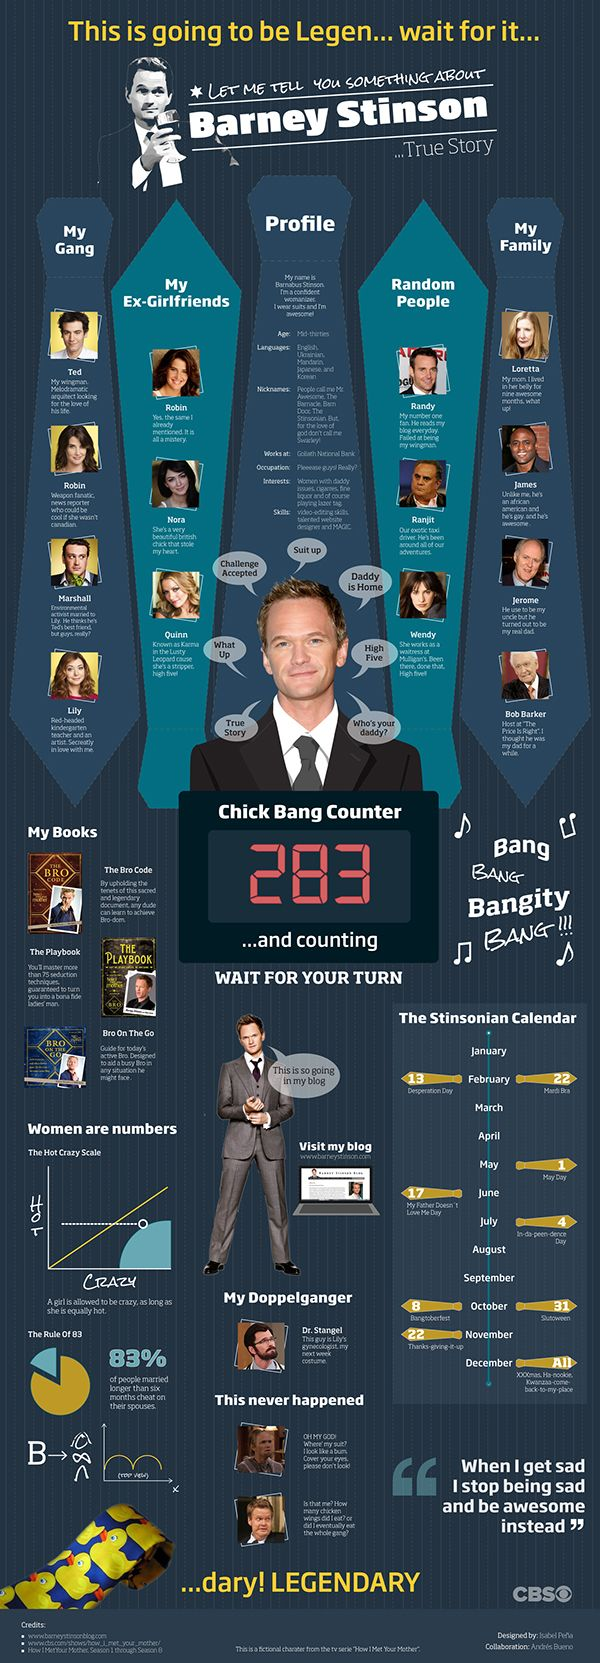 Infografía de Barney Stinson, personaje de la serie How I Met Your Mother.